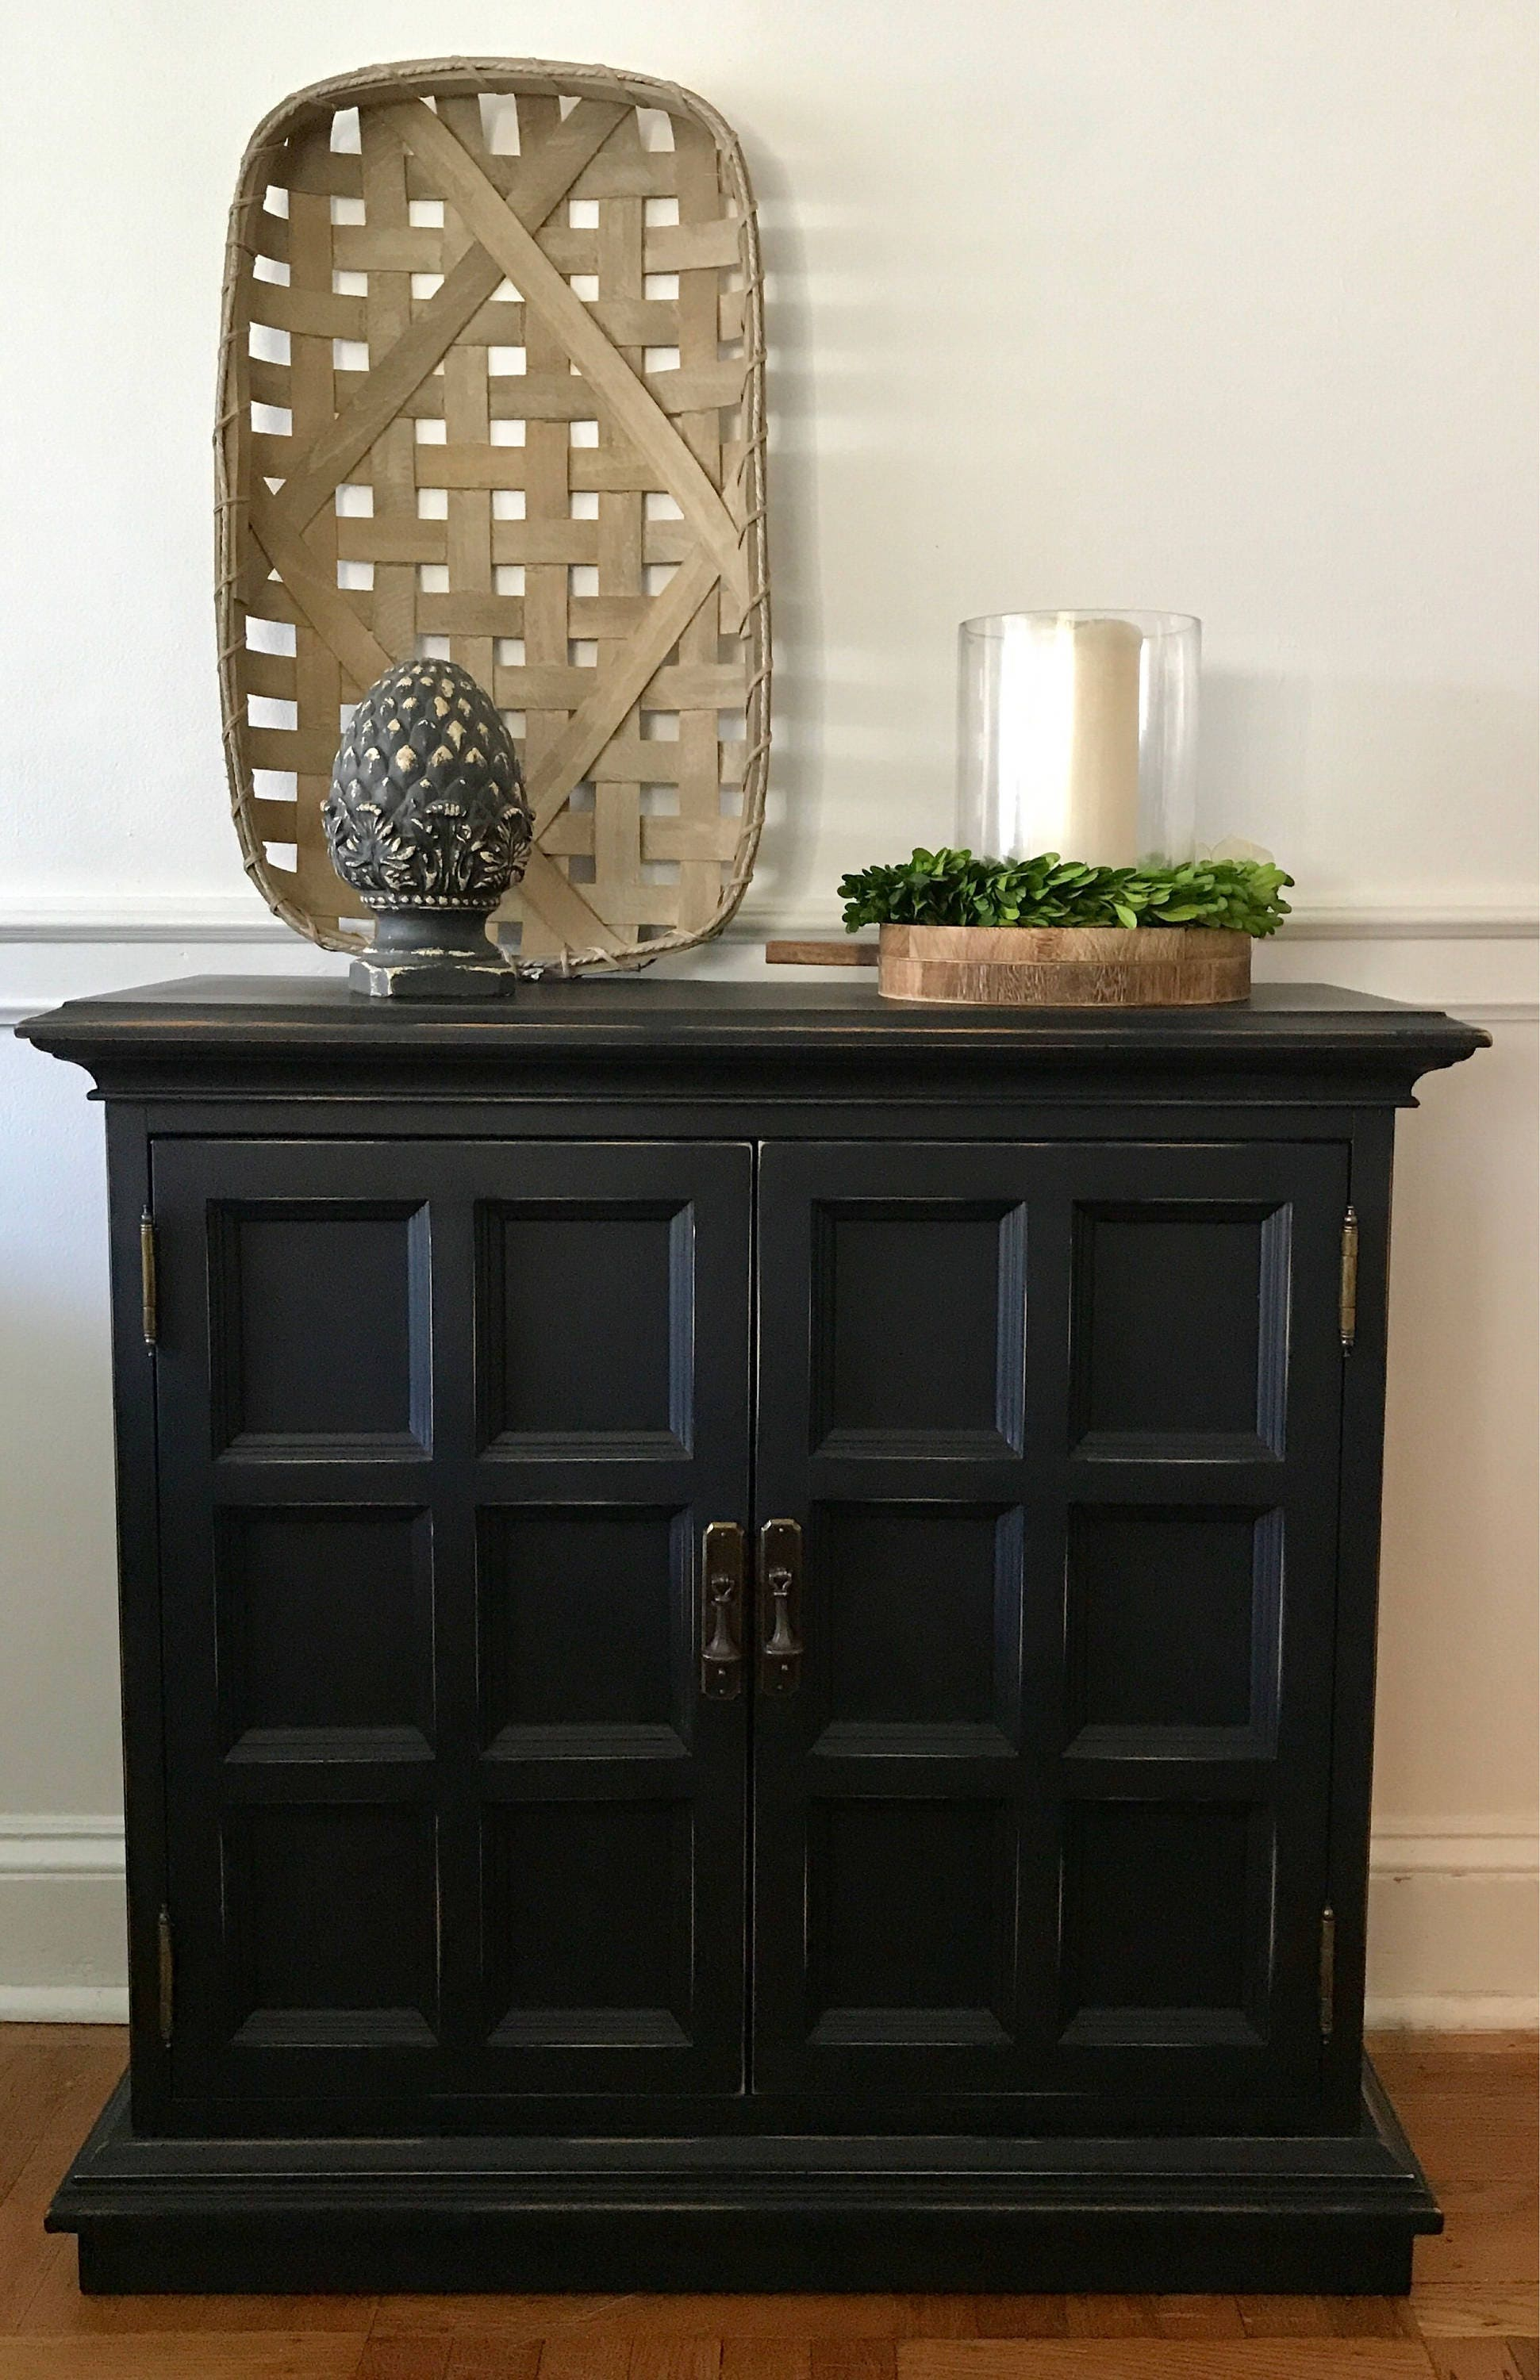 SOLD Ethan Allen Console, Farmhouse Console, Rustic Console, Painted Console,  Entry Cabinet, Entry Table, Foyer Table, Pick Up Only